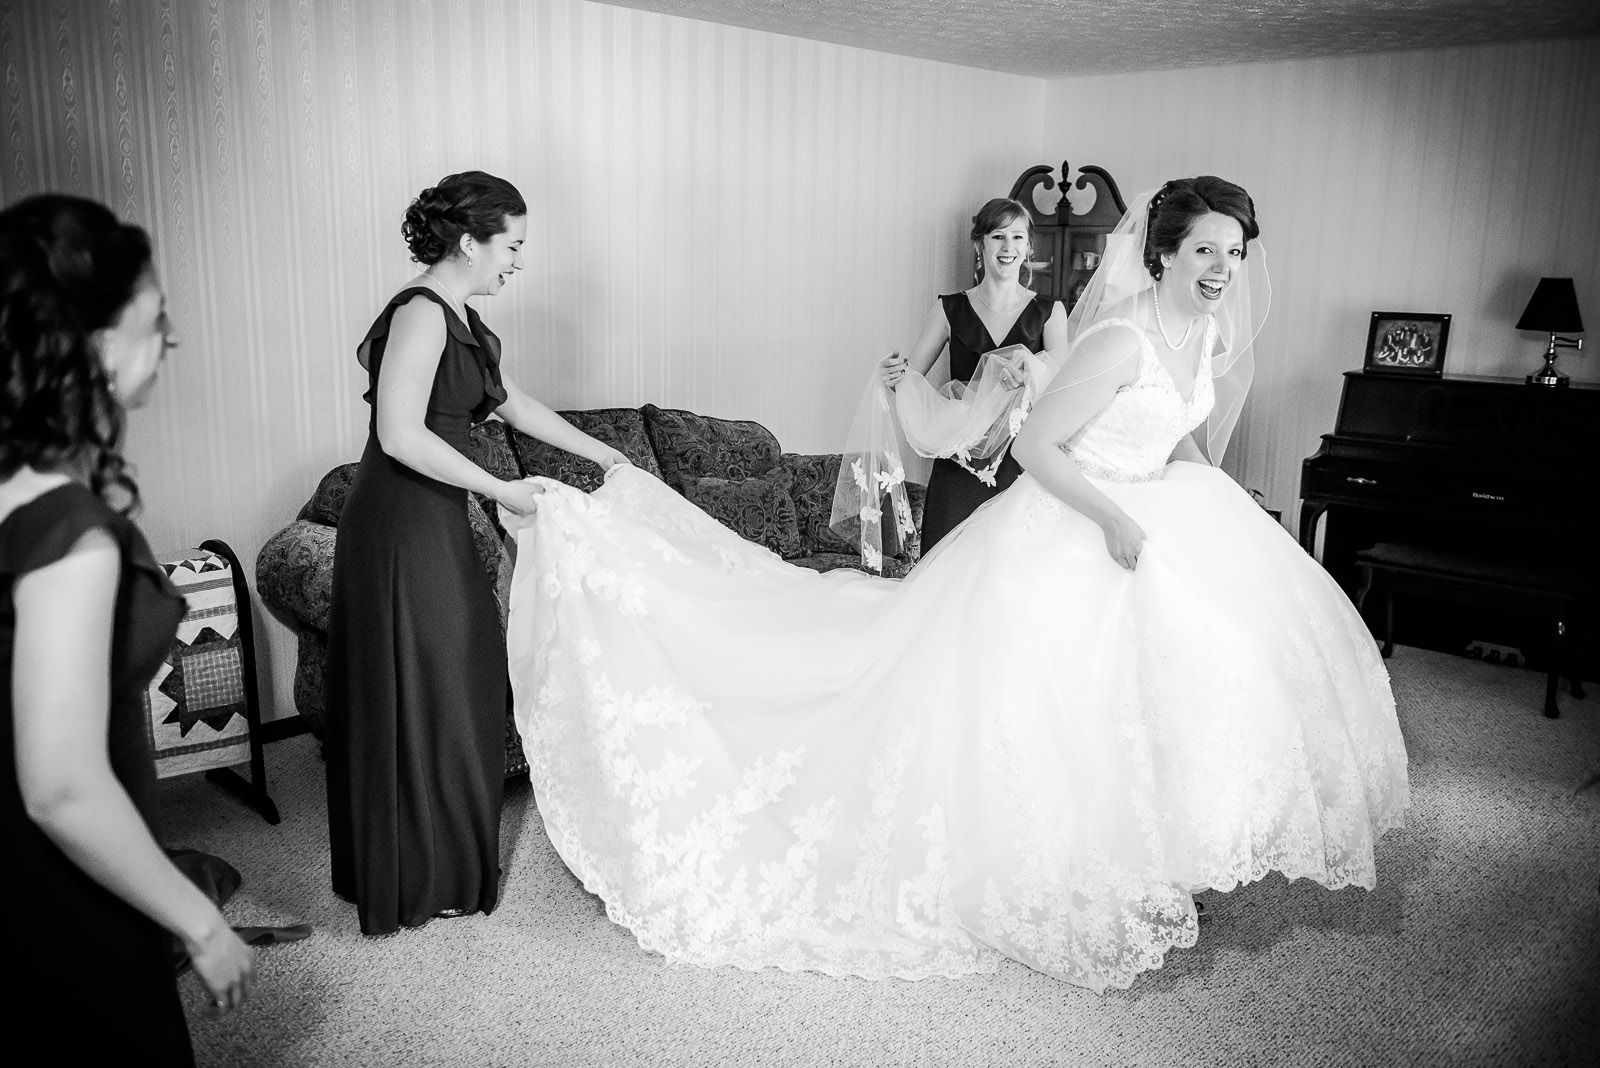 Eric_and_Christy_Photography_Blog_Wedding_Kelly_Michael-1